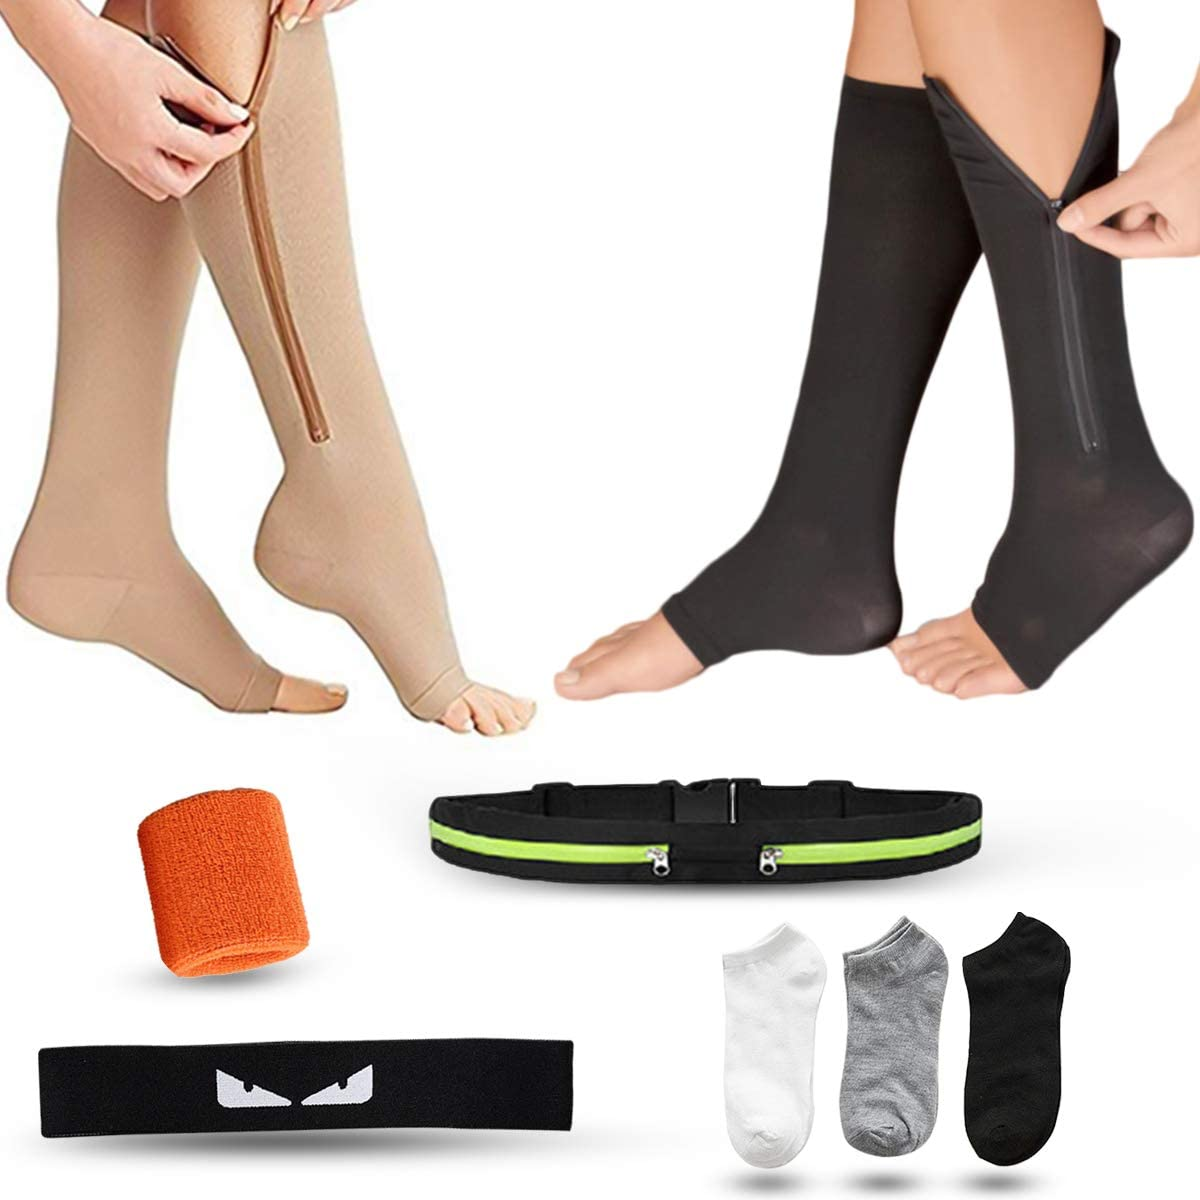 2Pairs Zipper Compression Leg Socks Support Stocking Knee High Socks for Women